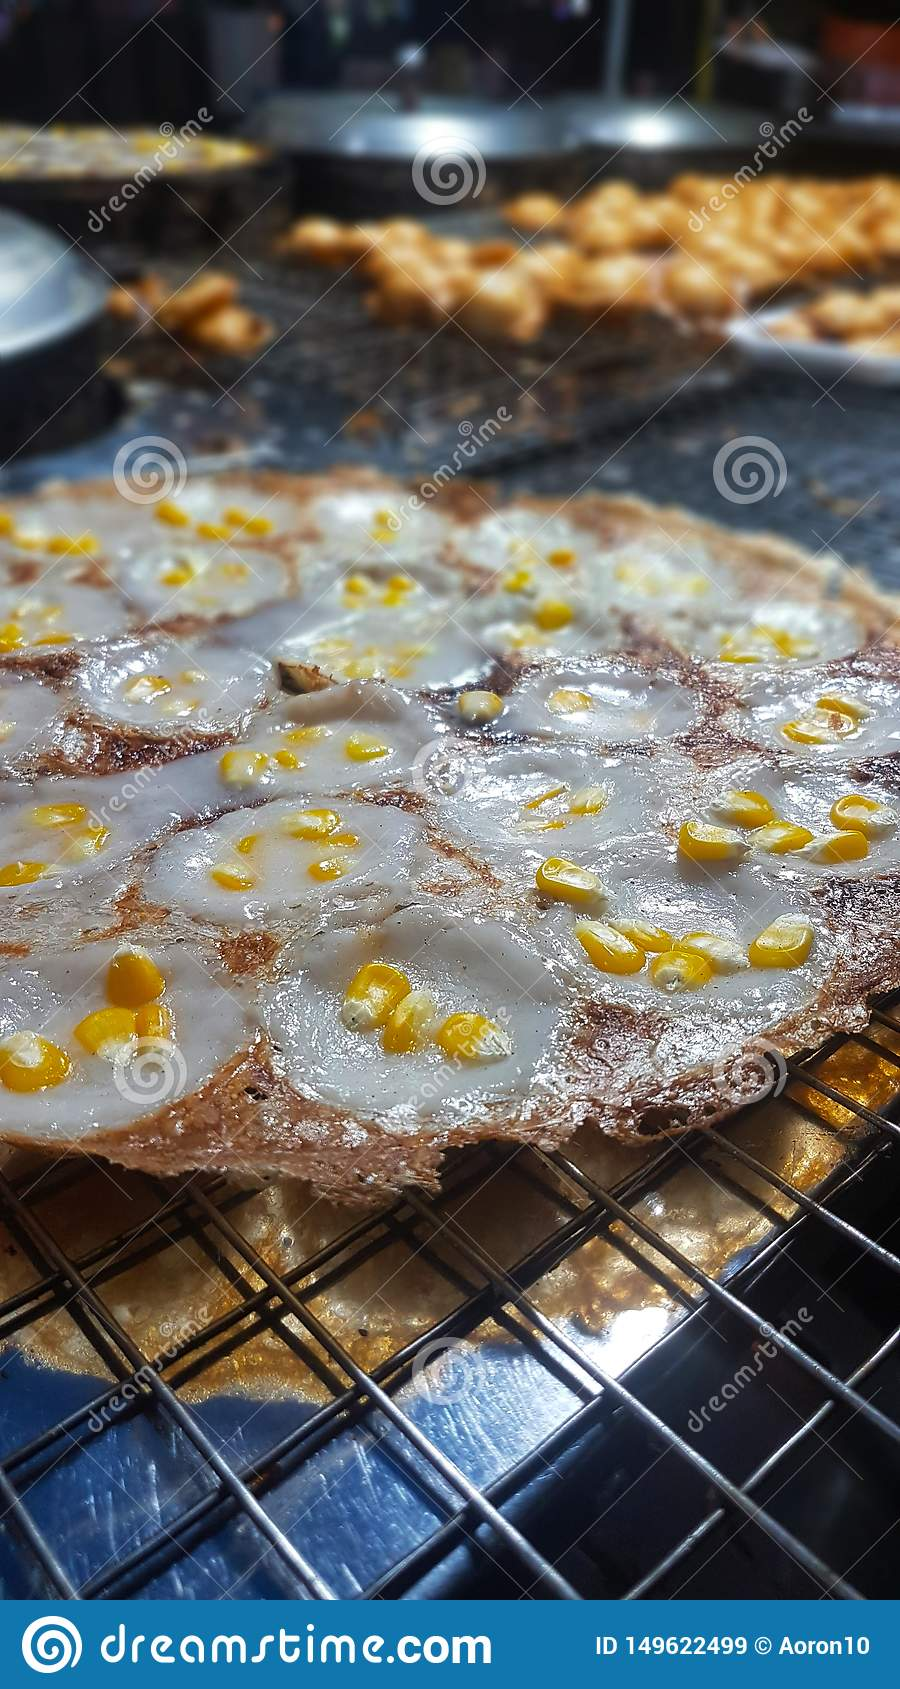 Mortar-toasted pastry with corn on the tray